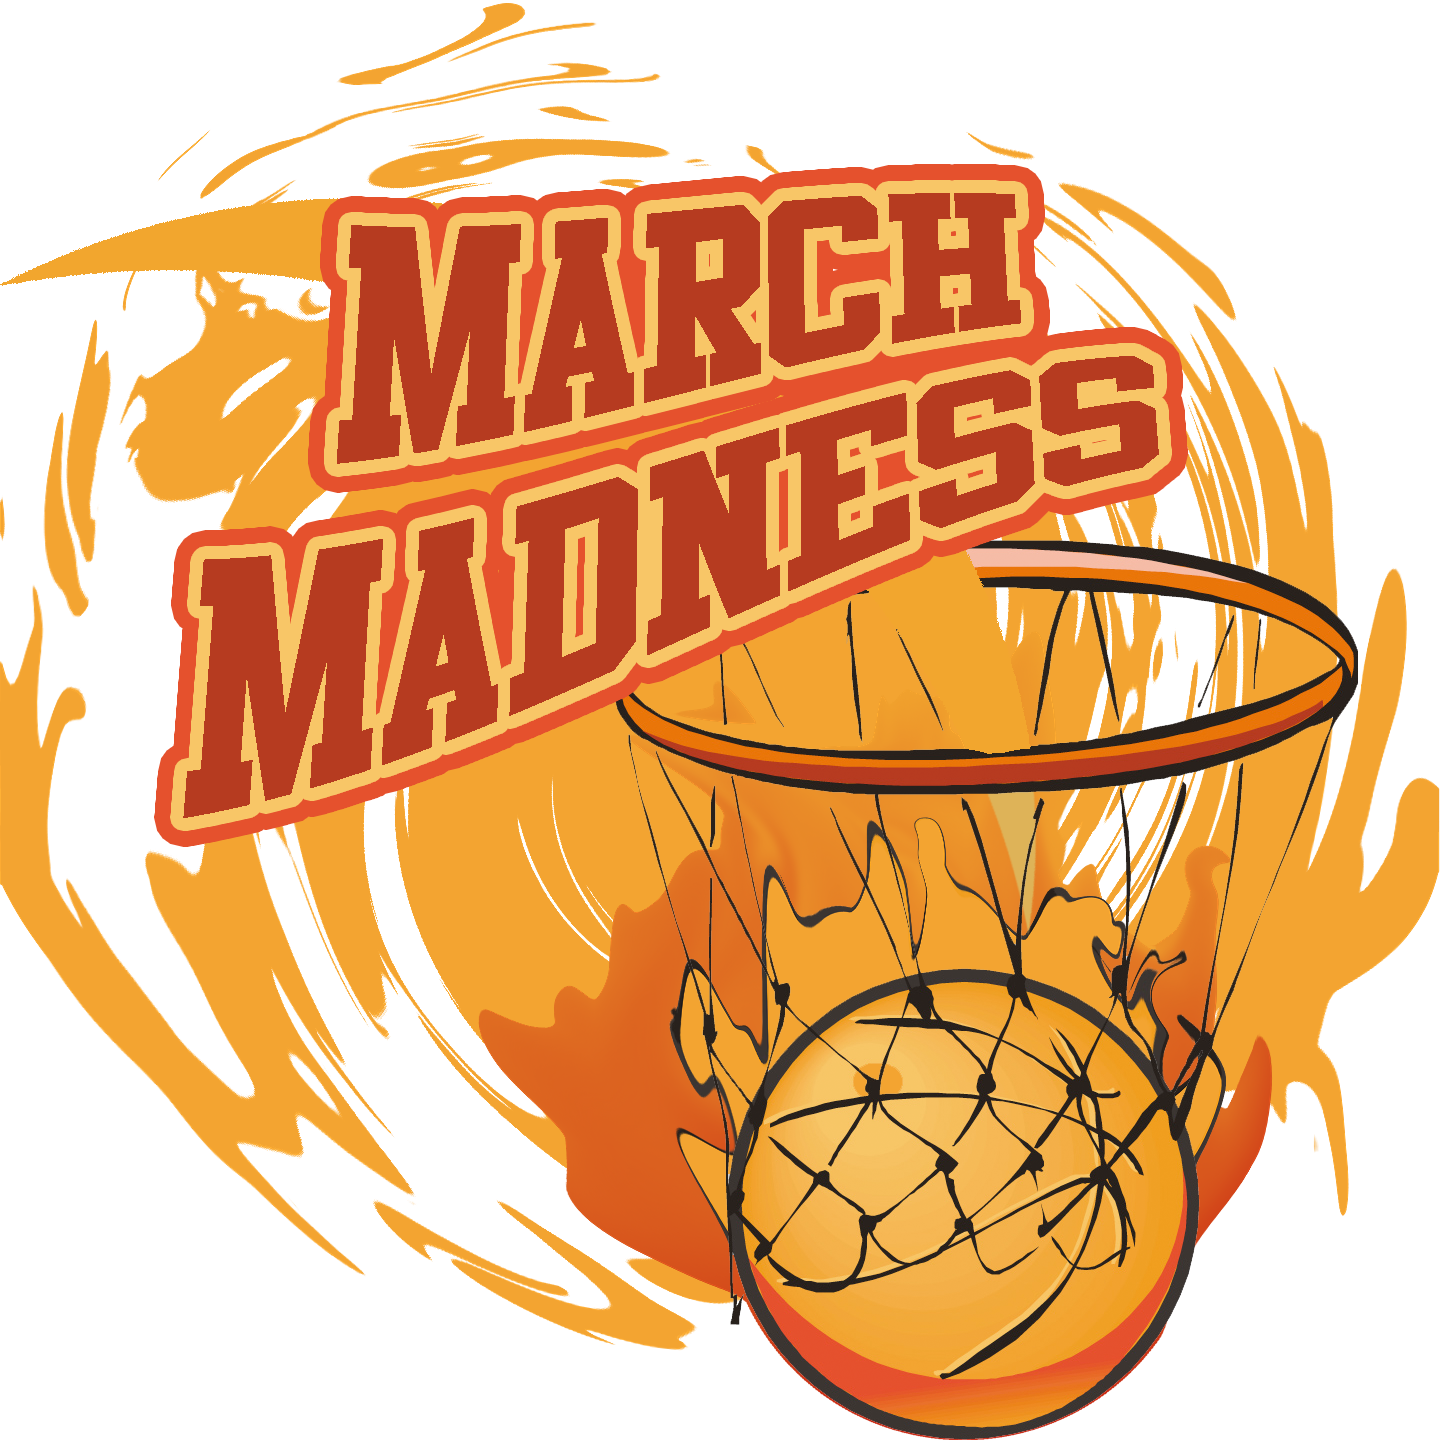 Ncaa March Madness Clipart. March Madnes-Ncaa March Madness Clipart. March Madness Logos Hd ..-19